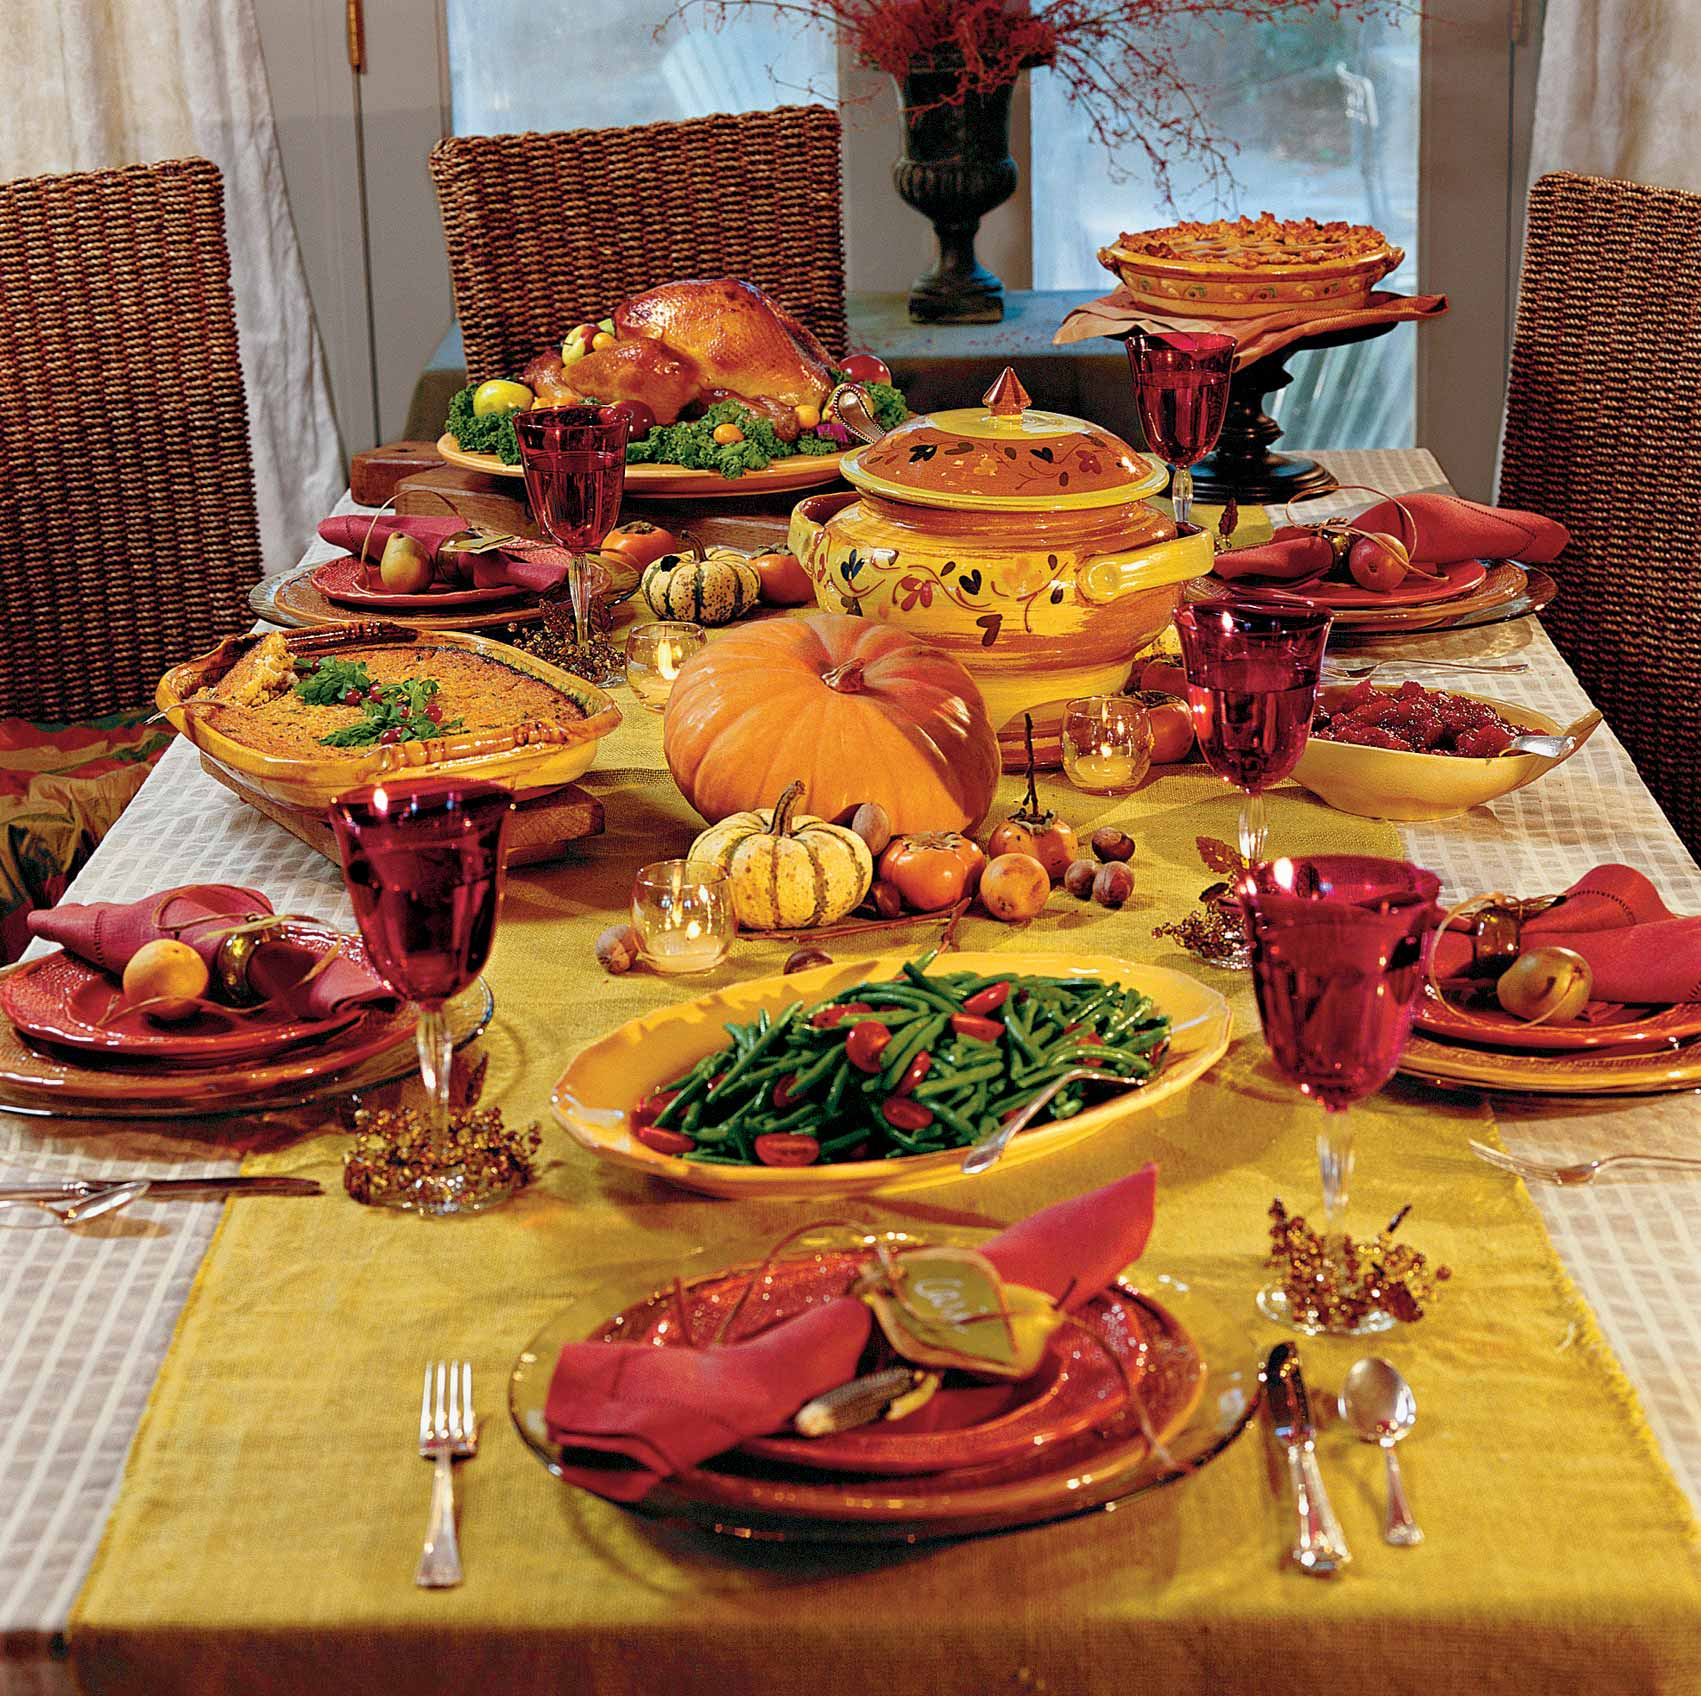 10 Stylish Ways to Decorate your Dining Table for Thanksgiving  Dining Table for Thanksgiving 10 Stylish Ways to Decorate your Dining Table for Thanksgiving 10 Stylish Ways to Decorate your Dining Table for Thanksgiving